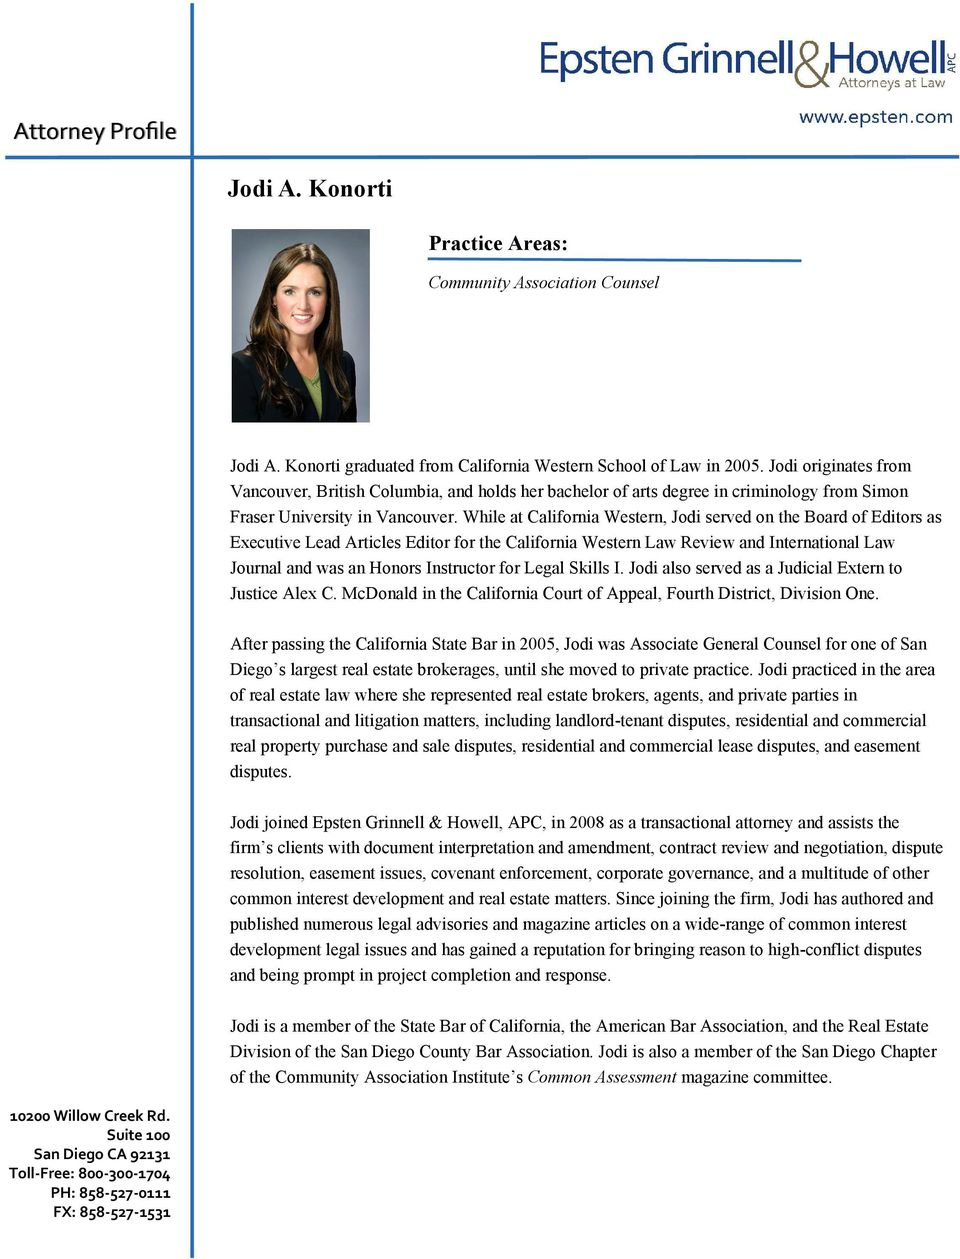 While at California Western, Jodi served on the Board of Editors as Executive Lead Articles Editor for the California Western Law Review and International Law Journal and was an Honors Instructor for